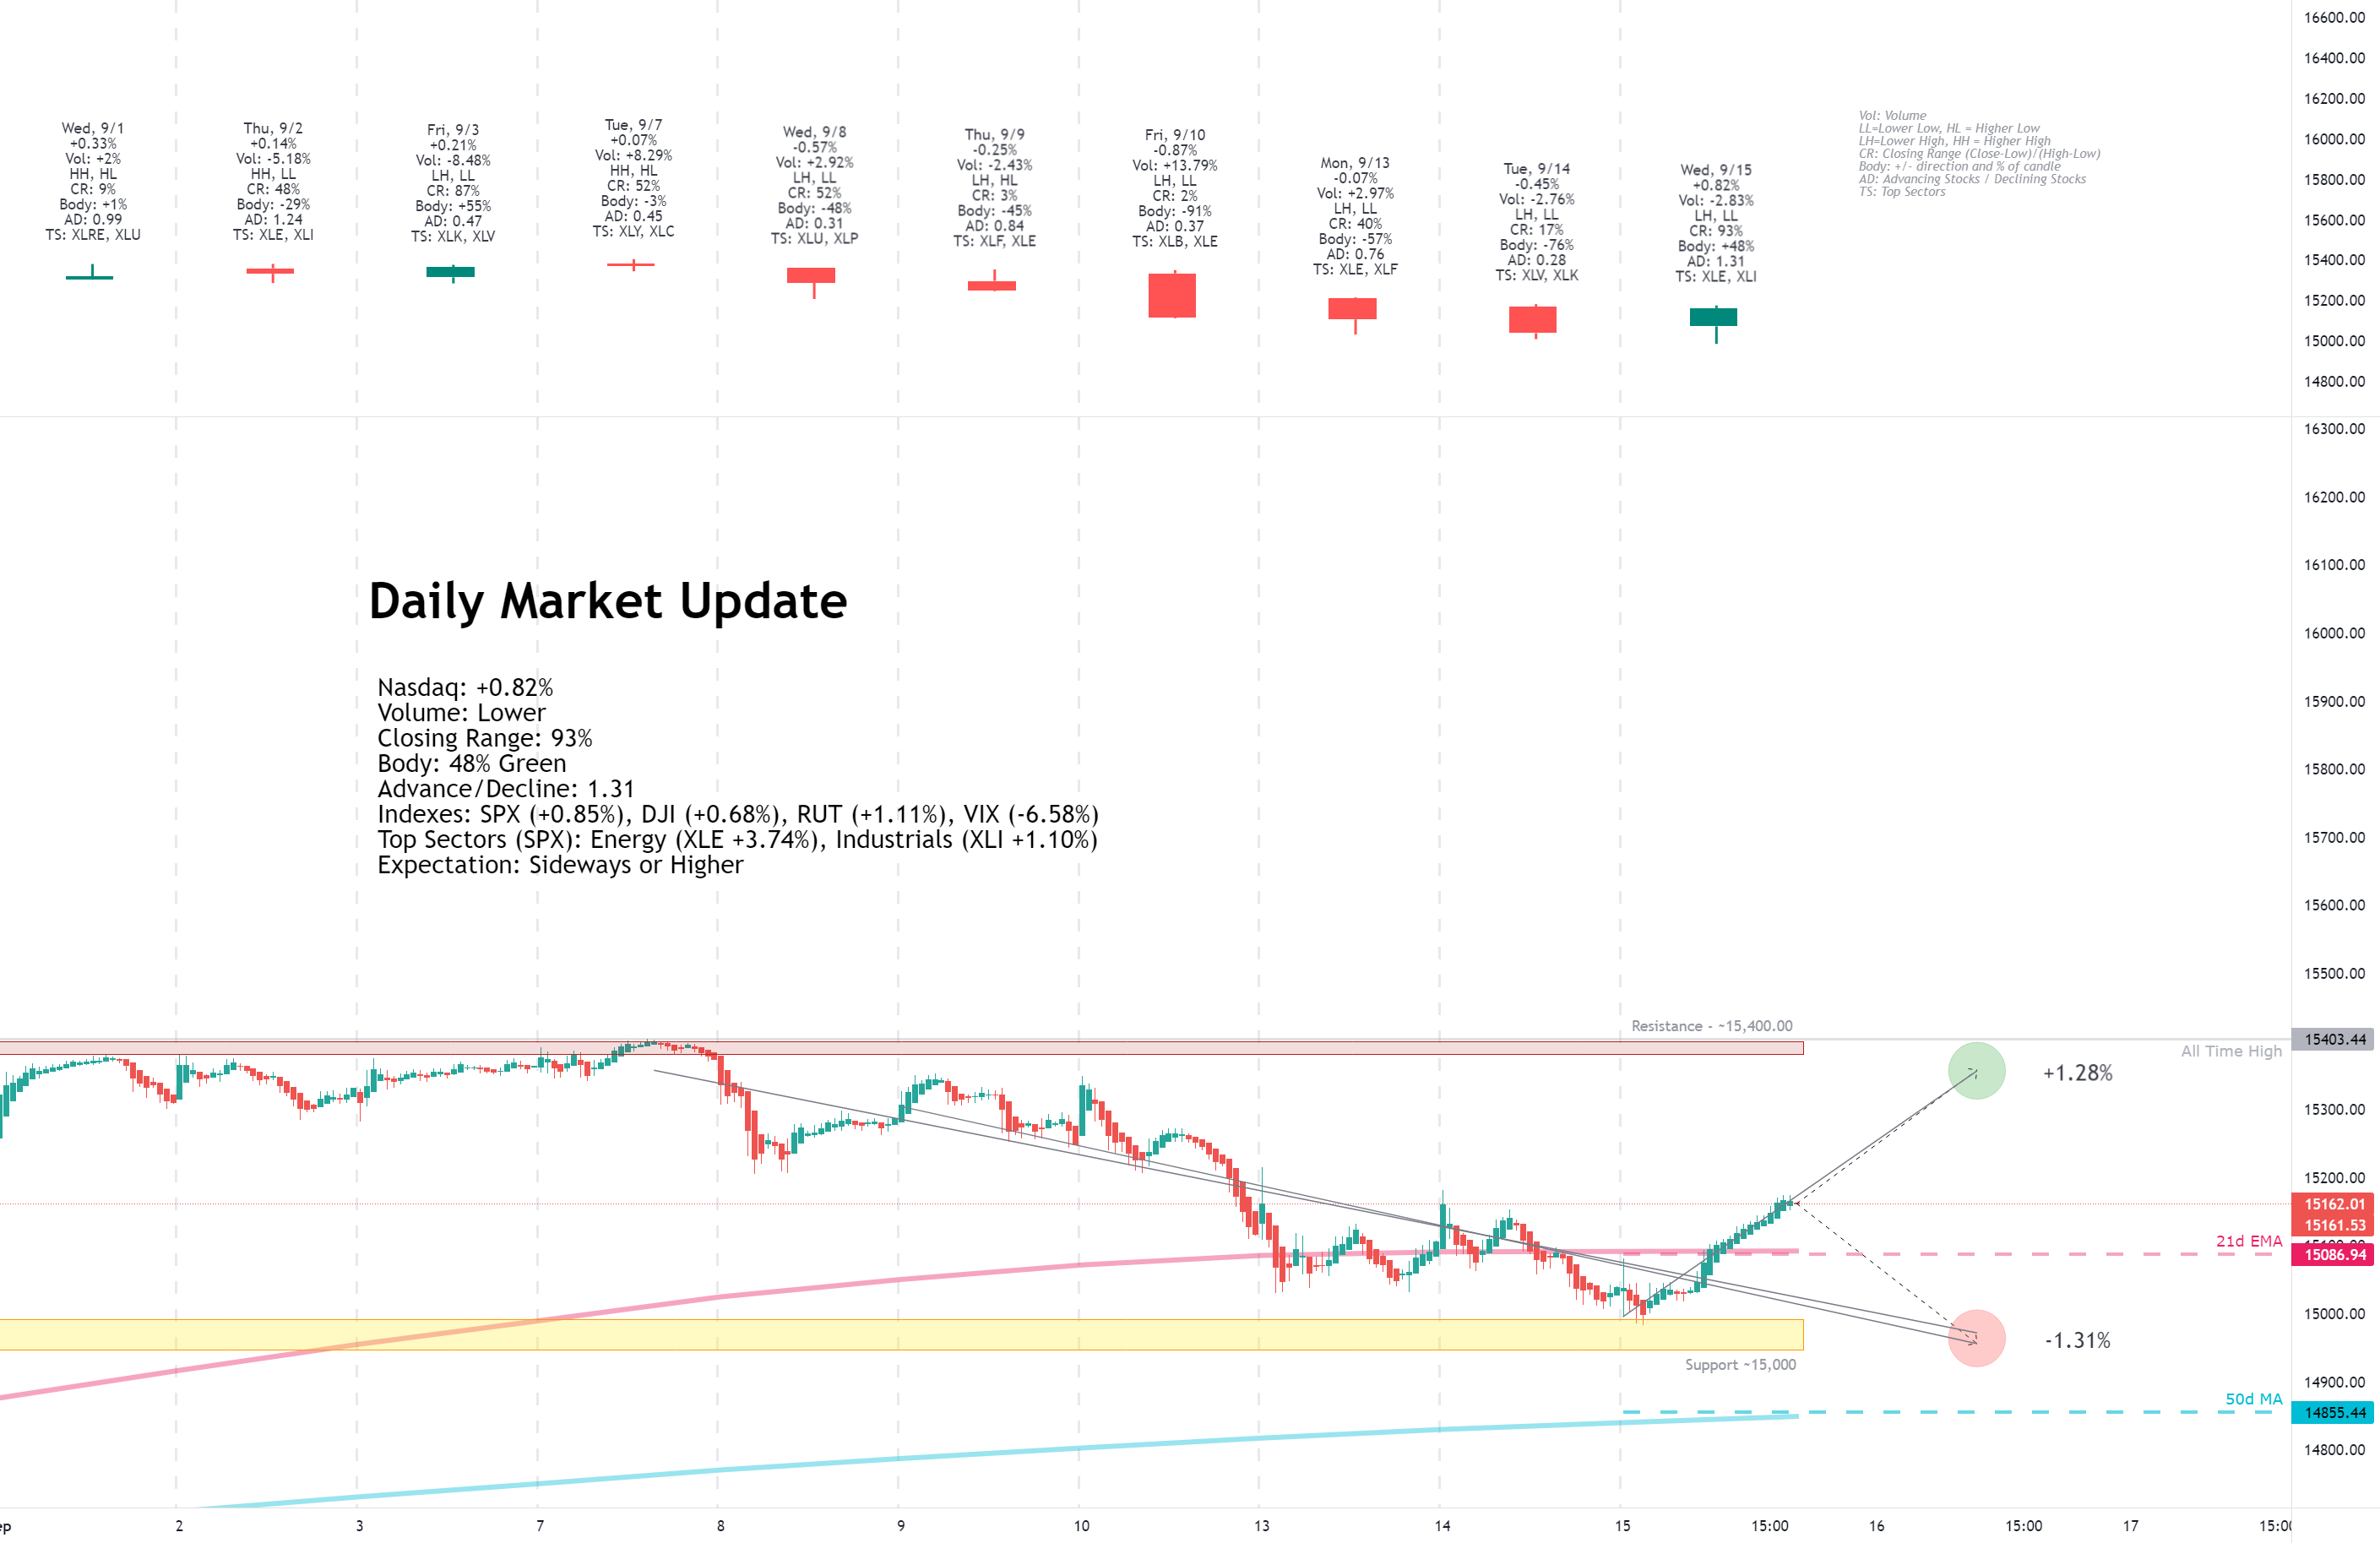 Daily Market Update for 9/15